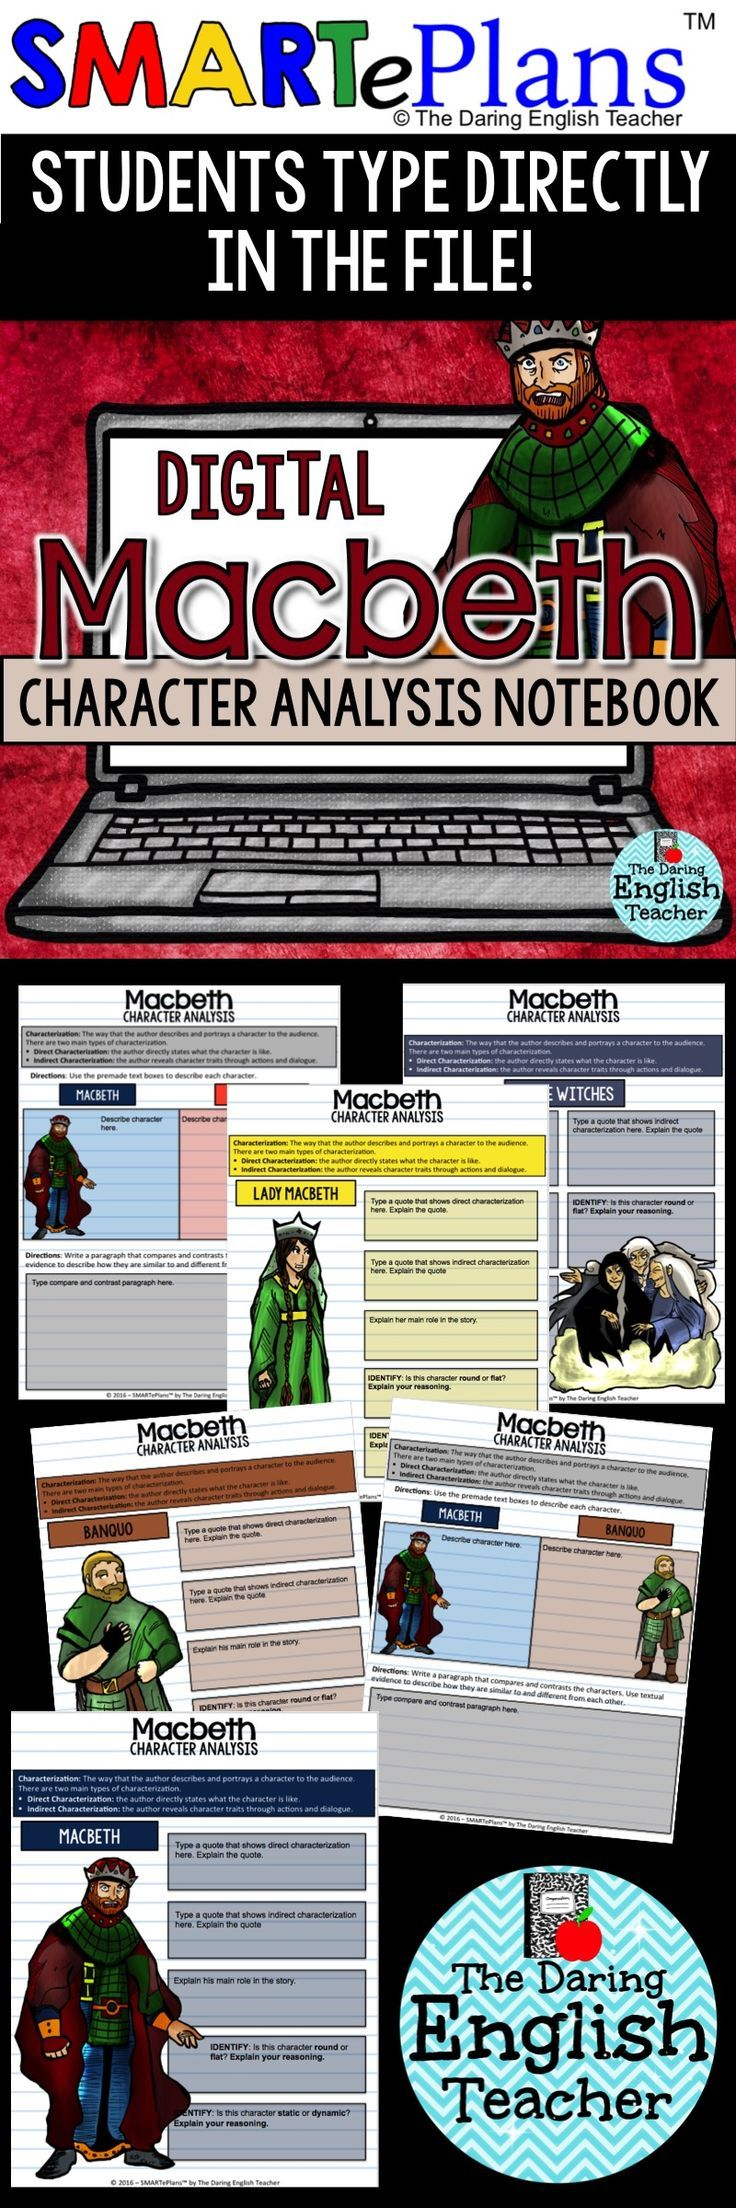 SMARTePlans Digital Macbeth Character Analysis Interactive Notebook